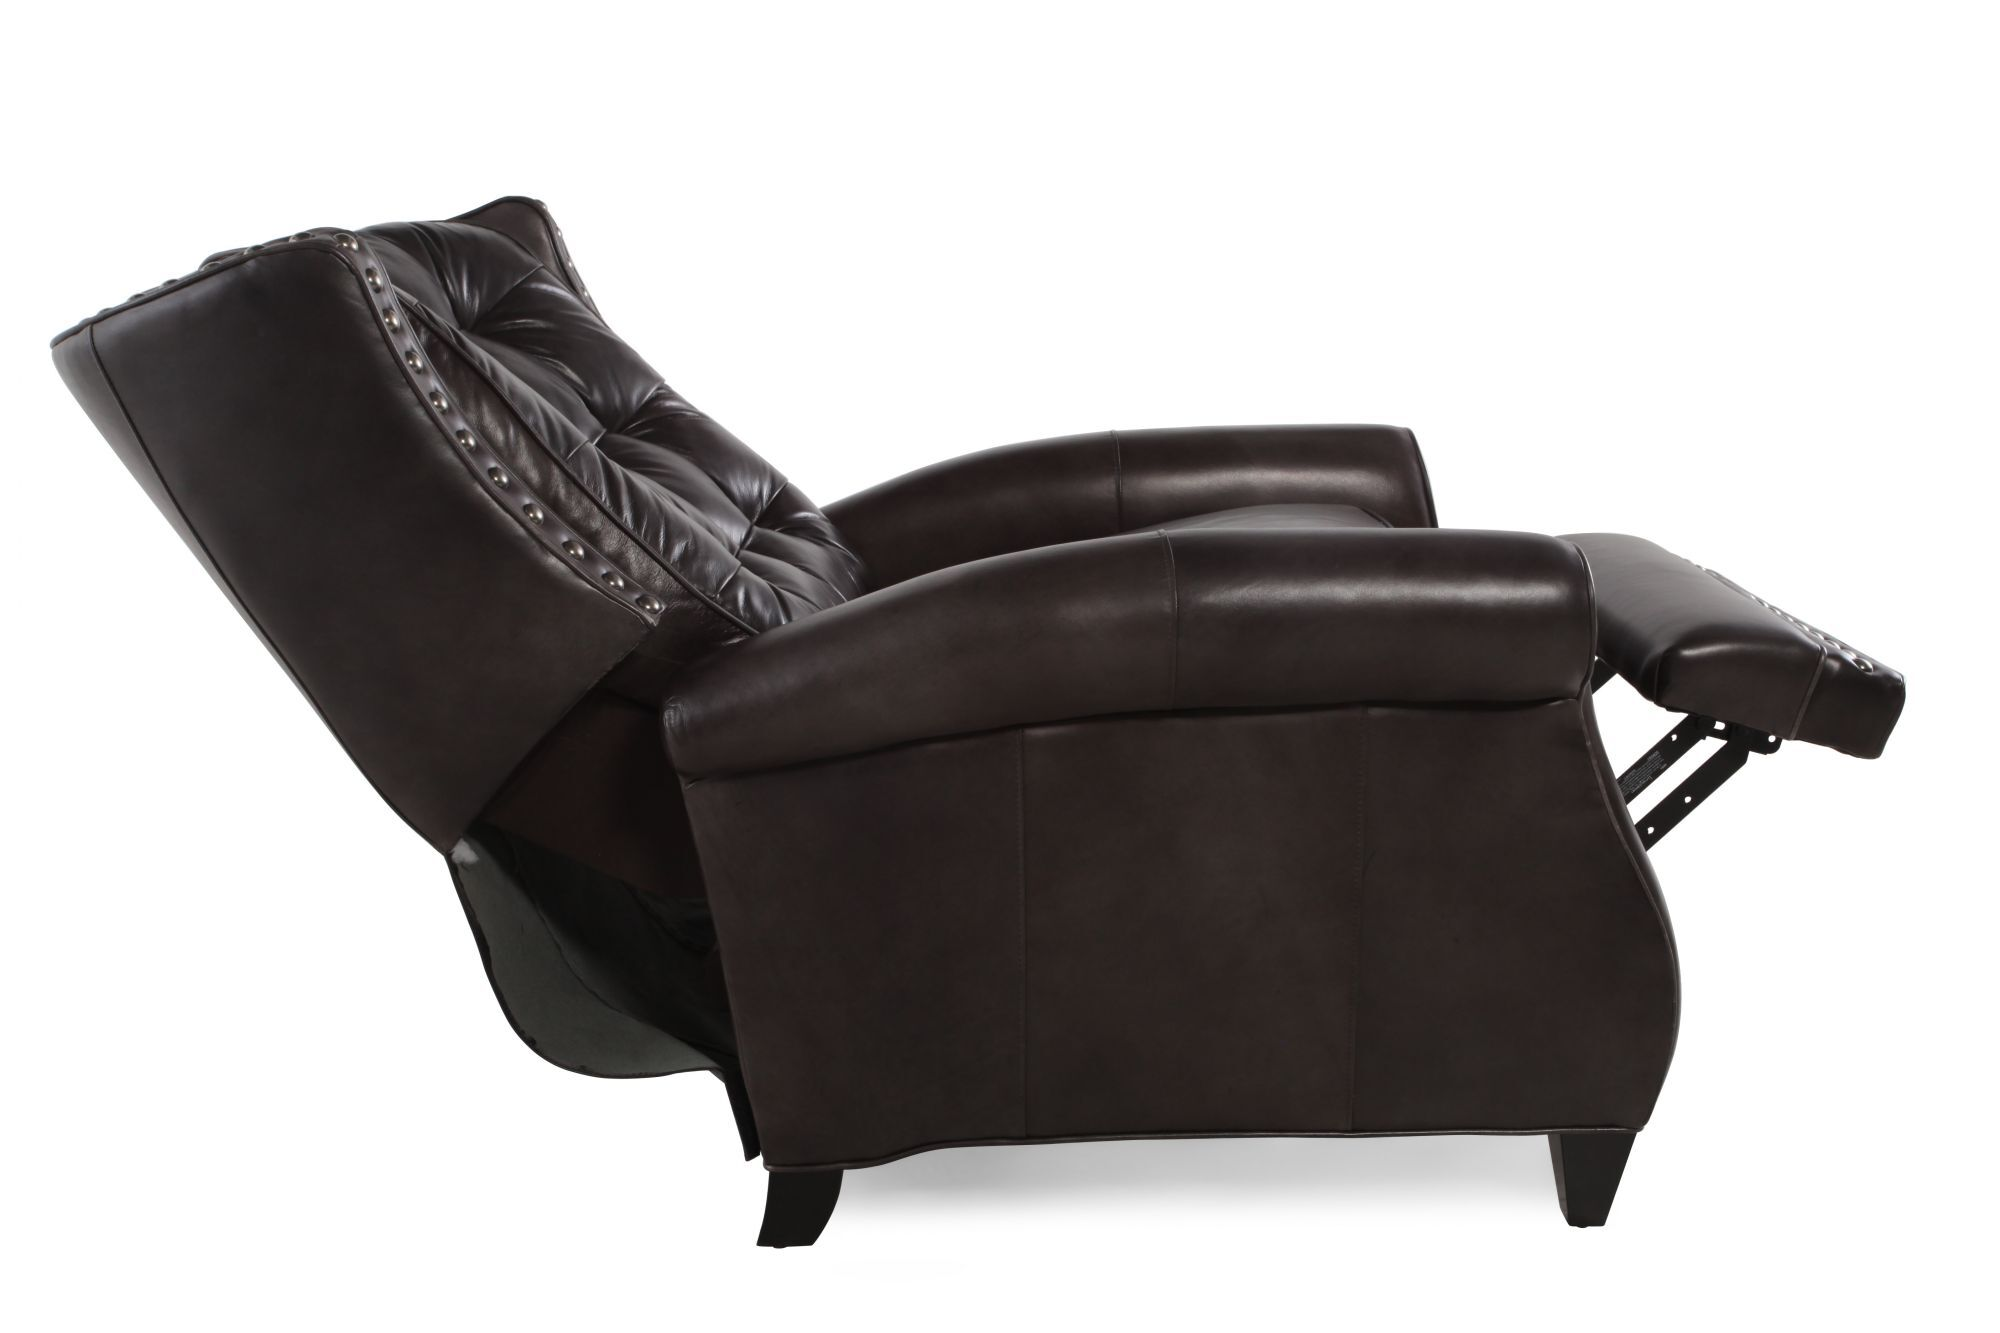 Bernhardt Leather Pierce Recliner  sc 1 st  Mathis Brothers & Bernhardt Leather Pierce Recliner | Mathis Brothers Furniture islam-shia.org